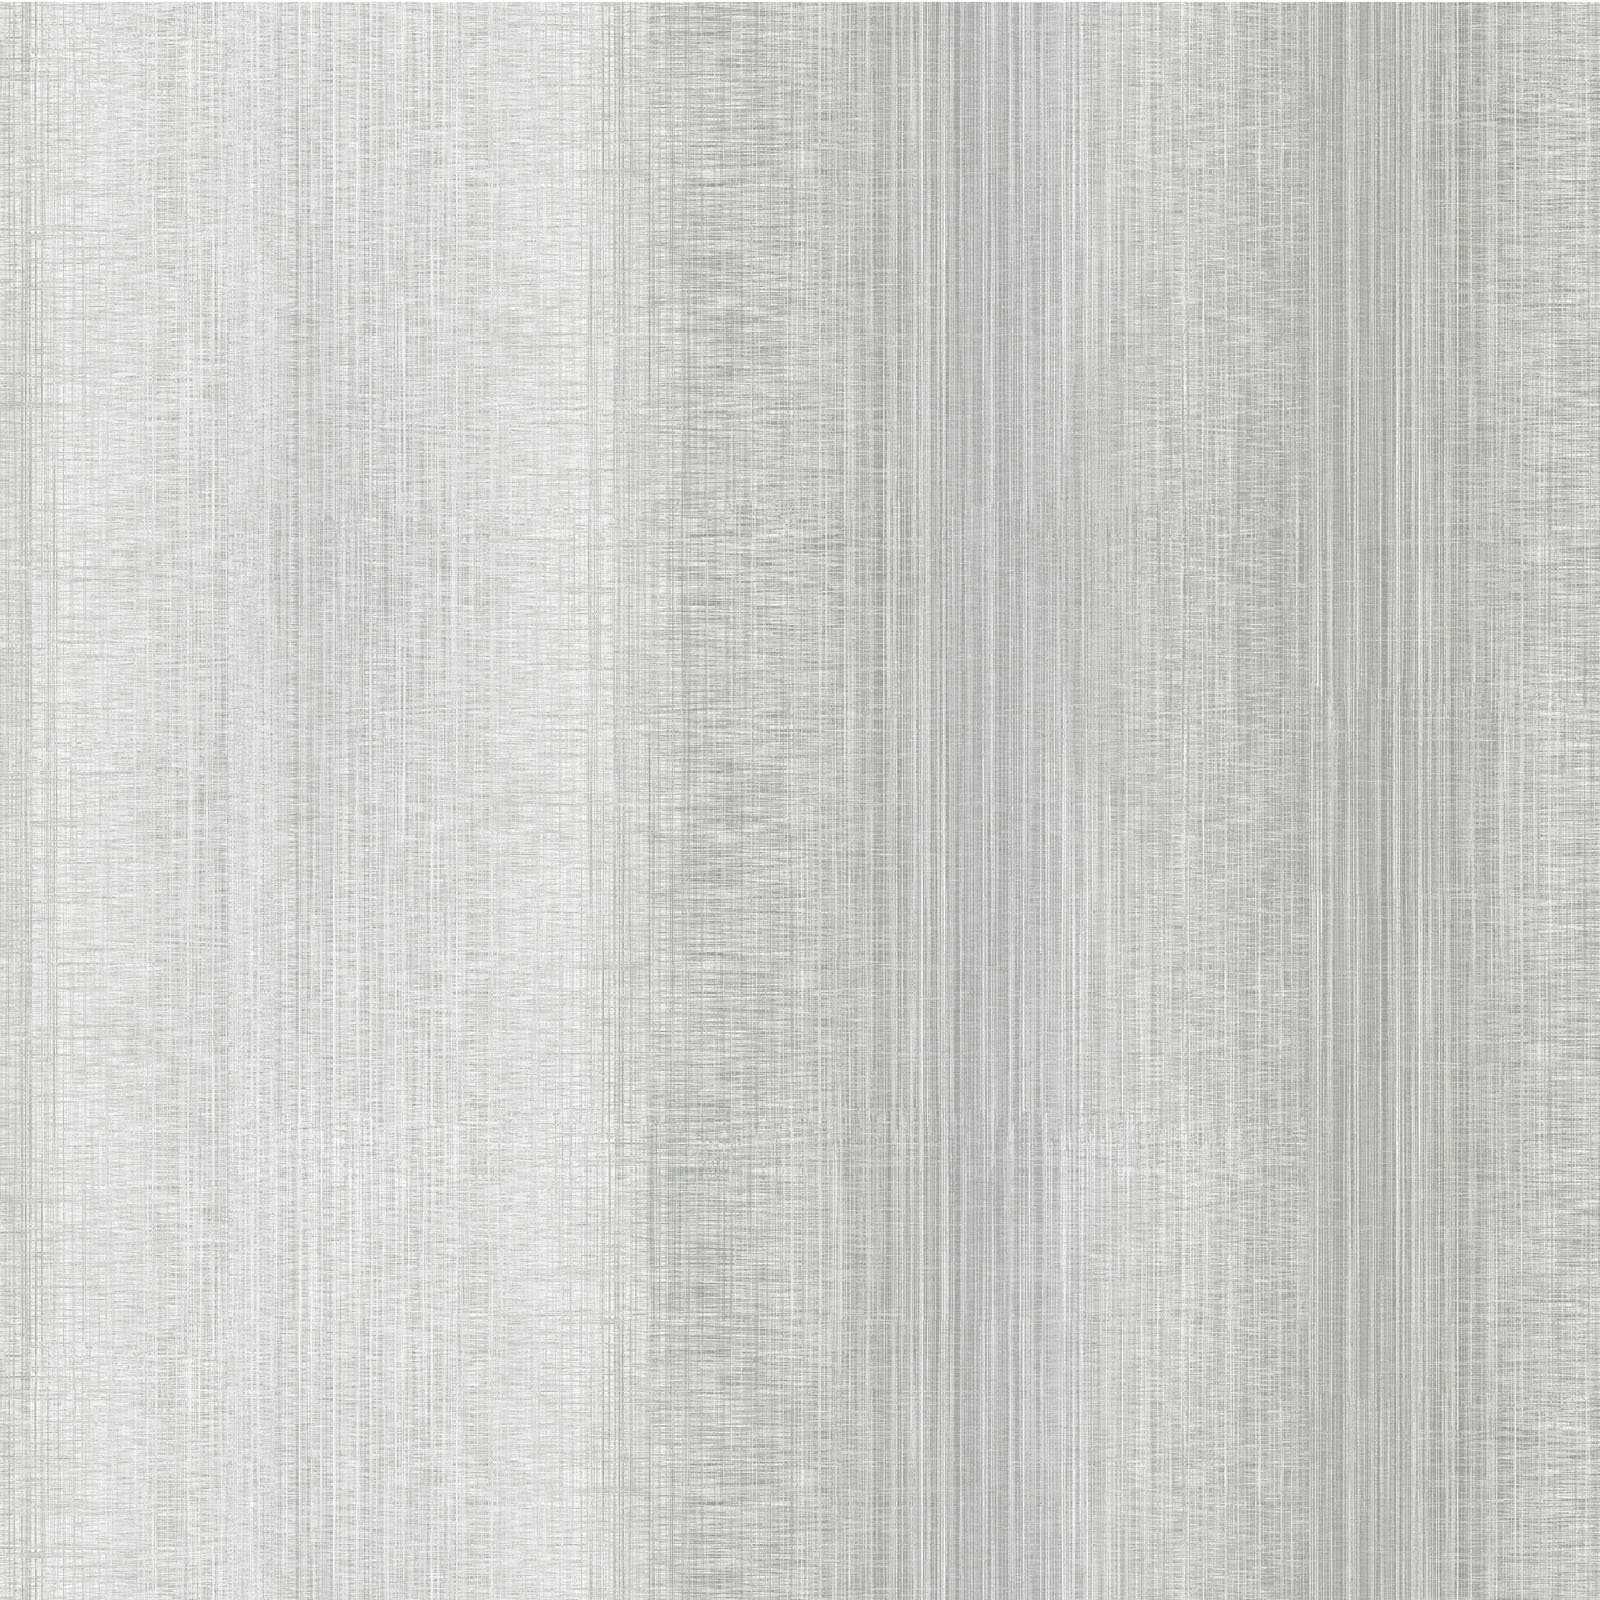 OMBR-4498 S - OMBRE 108 DIGITAL BY P&B BOUTIQUE GREY - ARRIVING IN AUGUST 2021